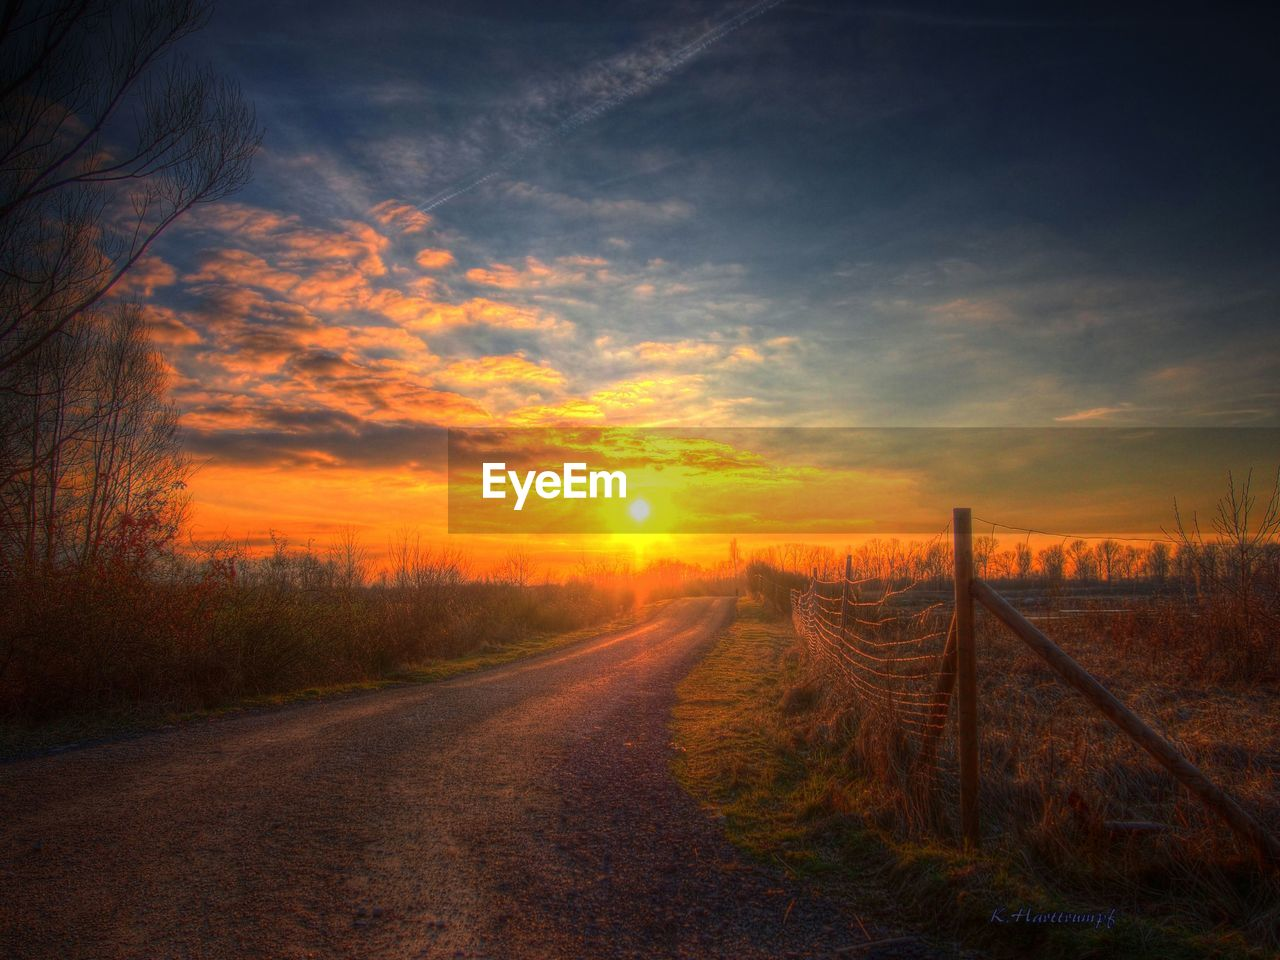 sunset, orange color, sun, tranquil scene, no people, scenics, landscape, tranquility, nature, the way forward, field, beauty in nature, sky, outdoors, rural scene, road, grass, tree, day